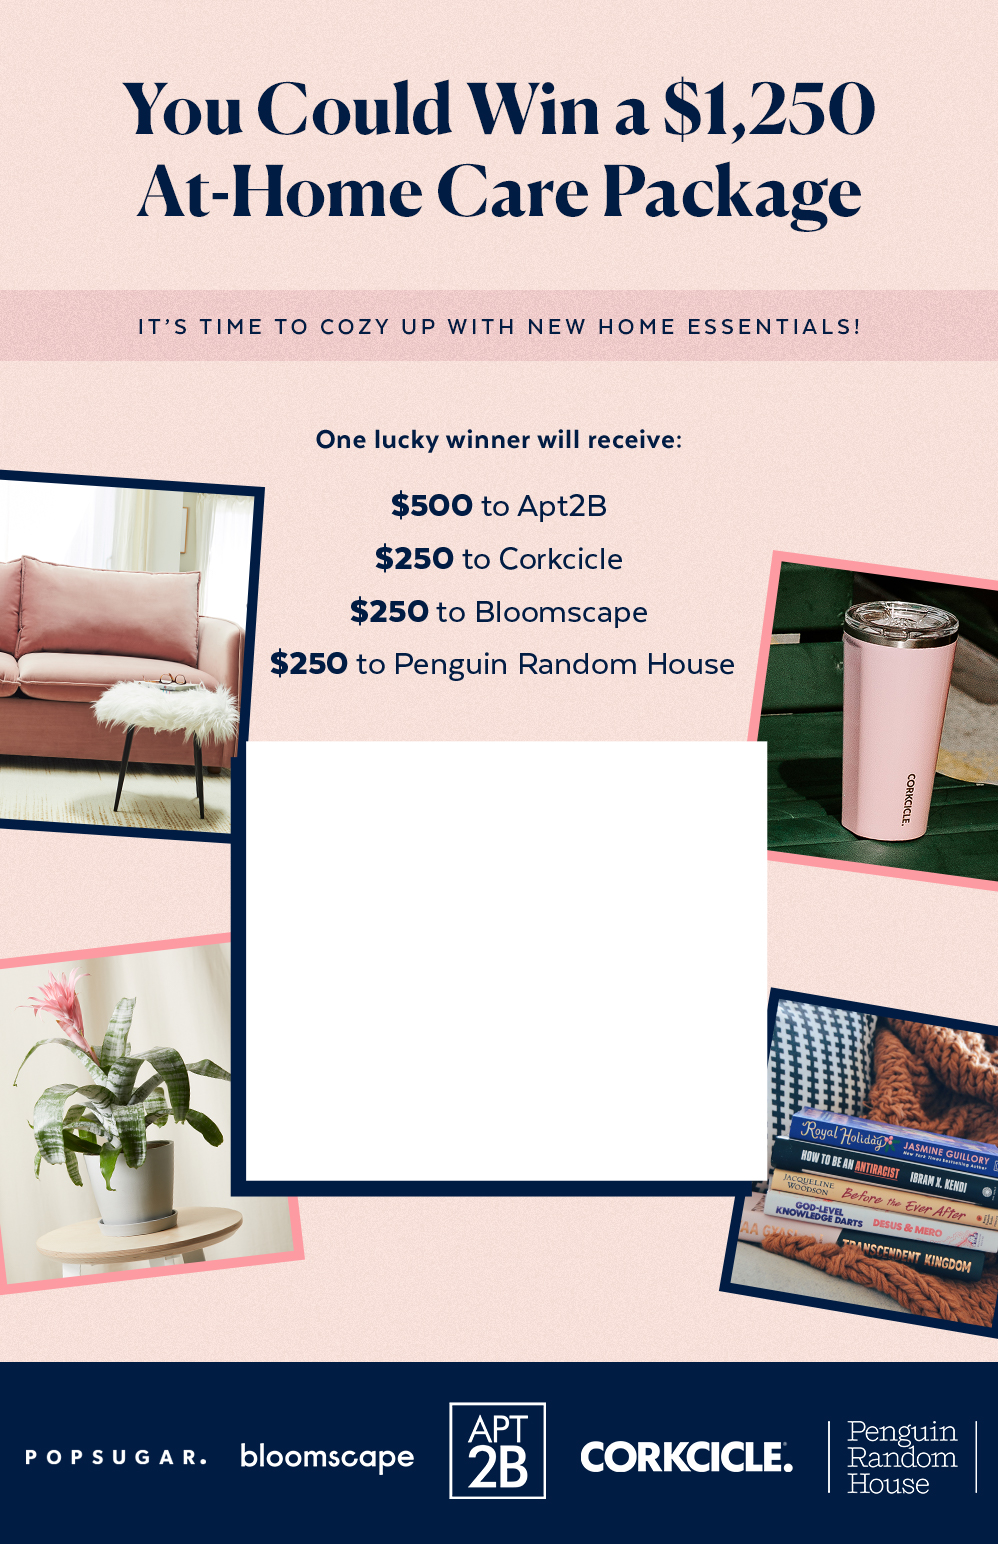 You Could Win a $1,250 At-Home Care Package